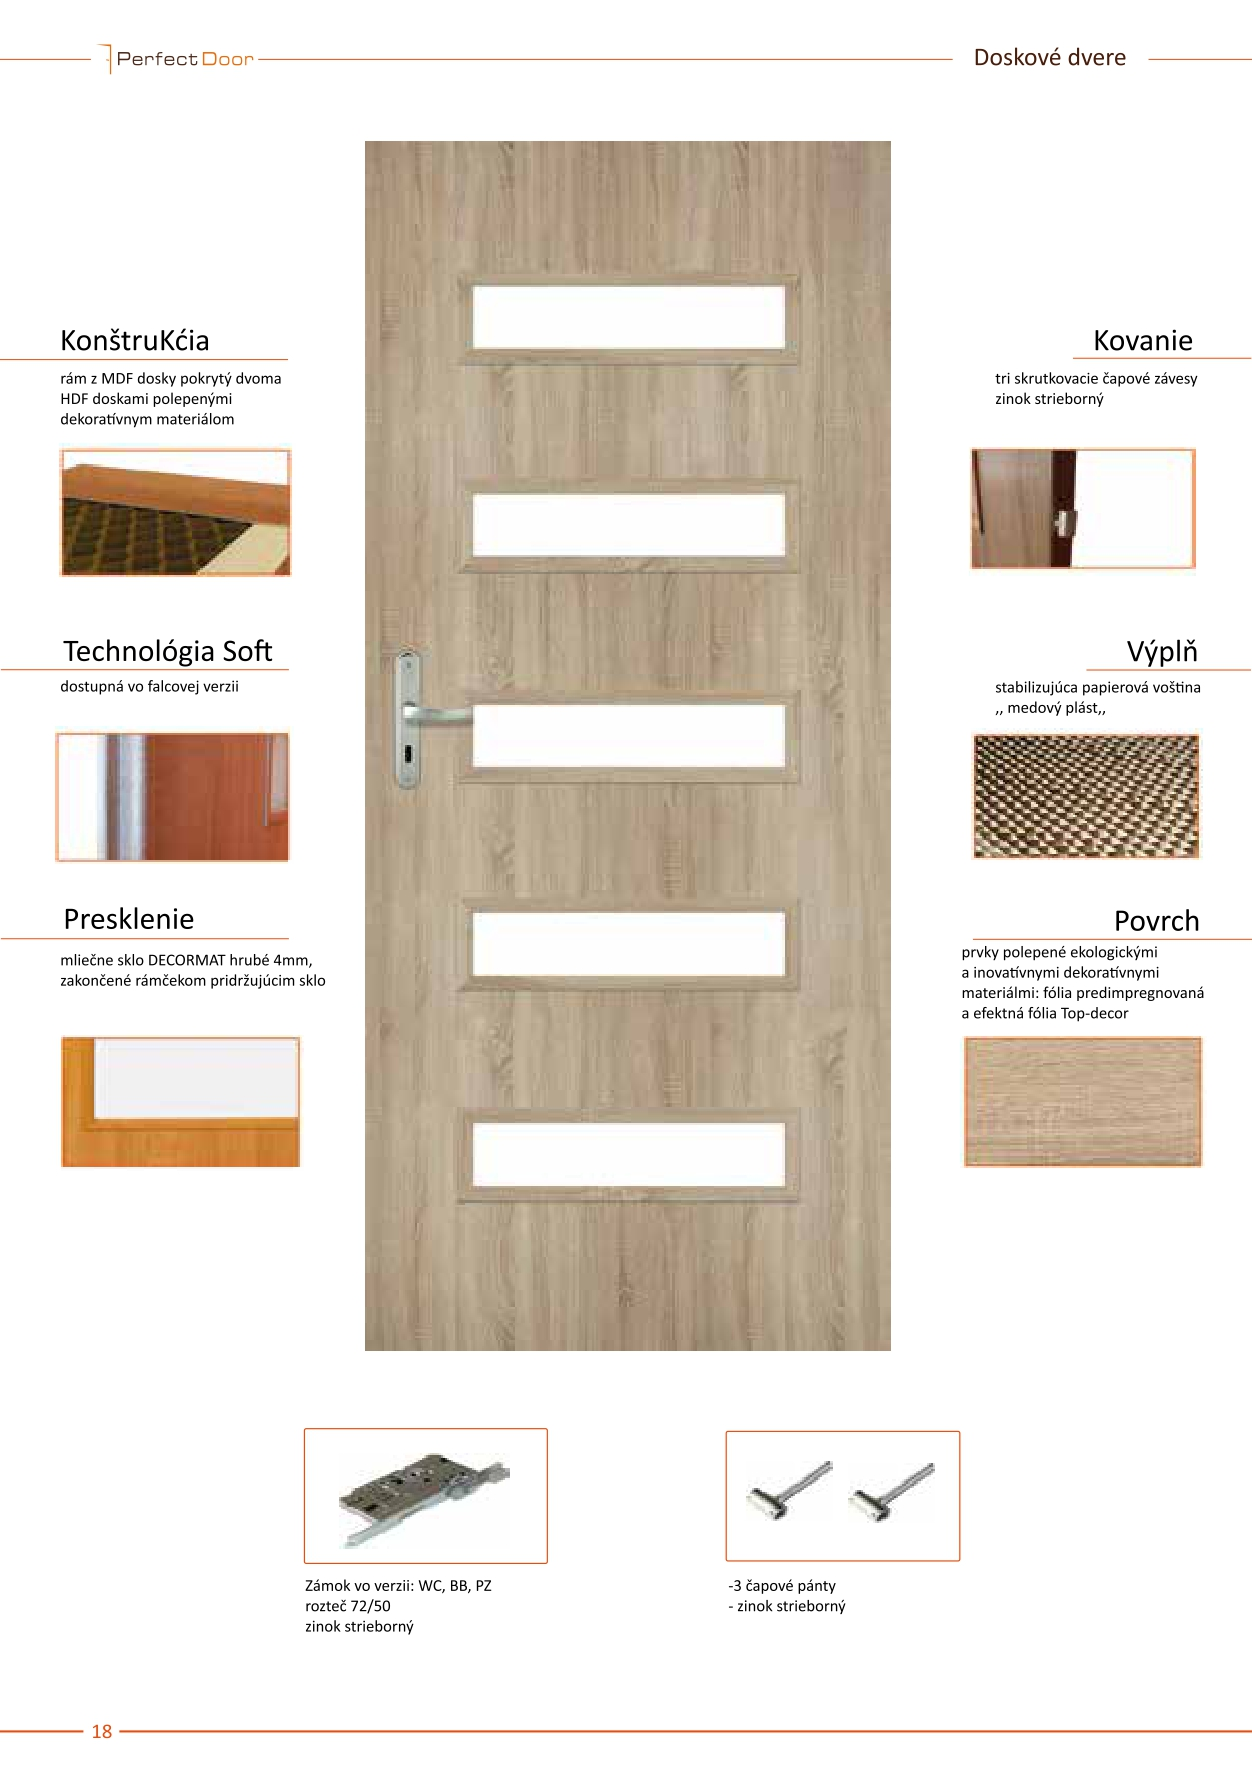 Perfectdoor katalog  1 2019 pages-to-jpg-0018